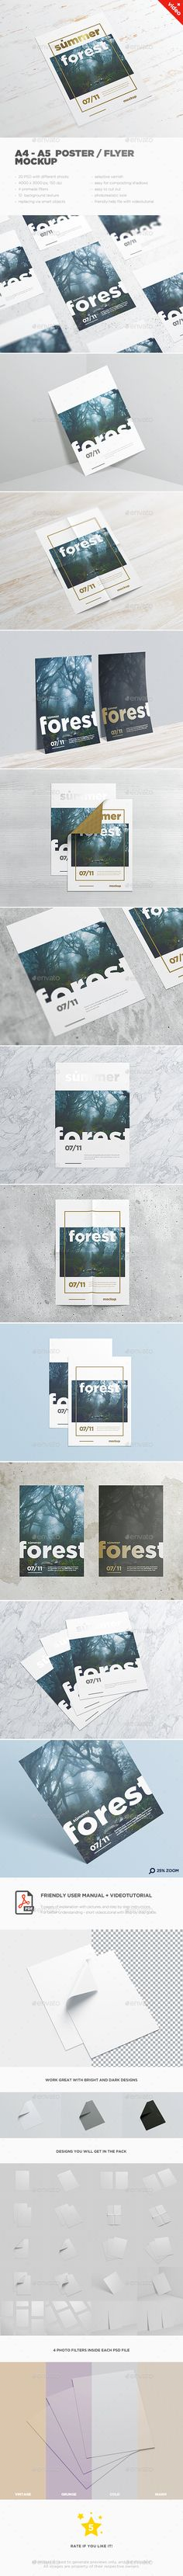 A4 - A5 Poster / Flyer-MockUp. Download here: http://graphicriver.net/item/a4-a5-poster-flyermockup-/15116213?ref=ksioks